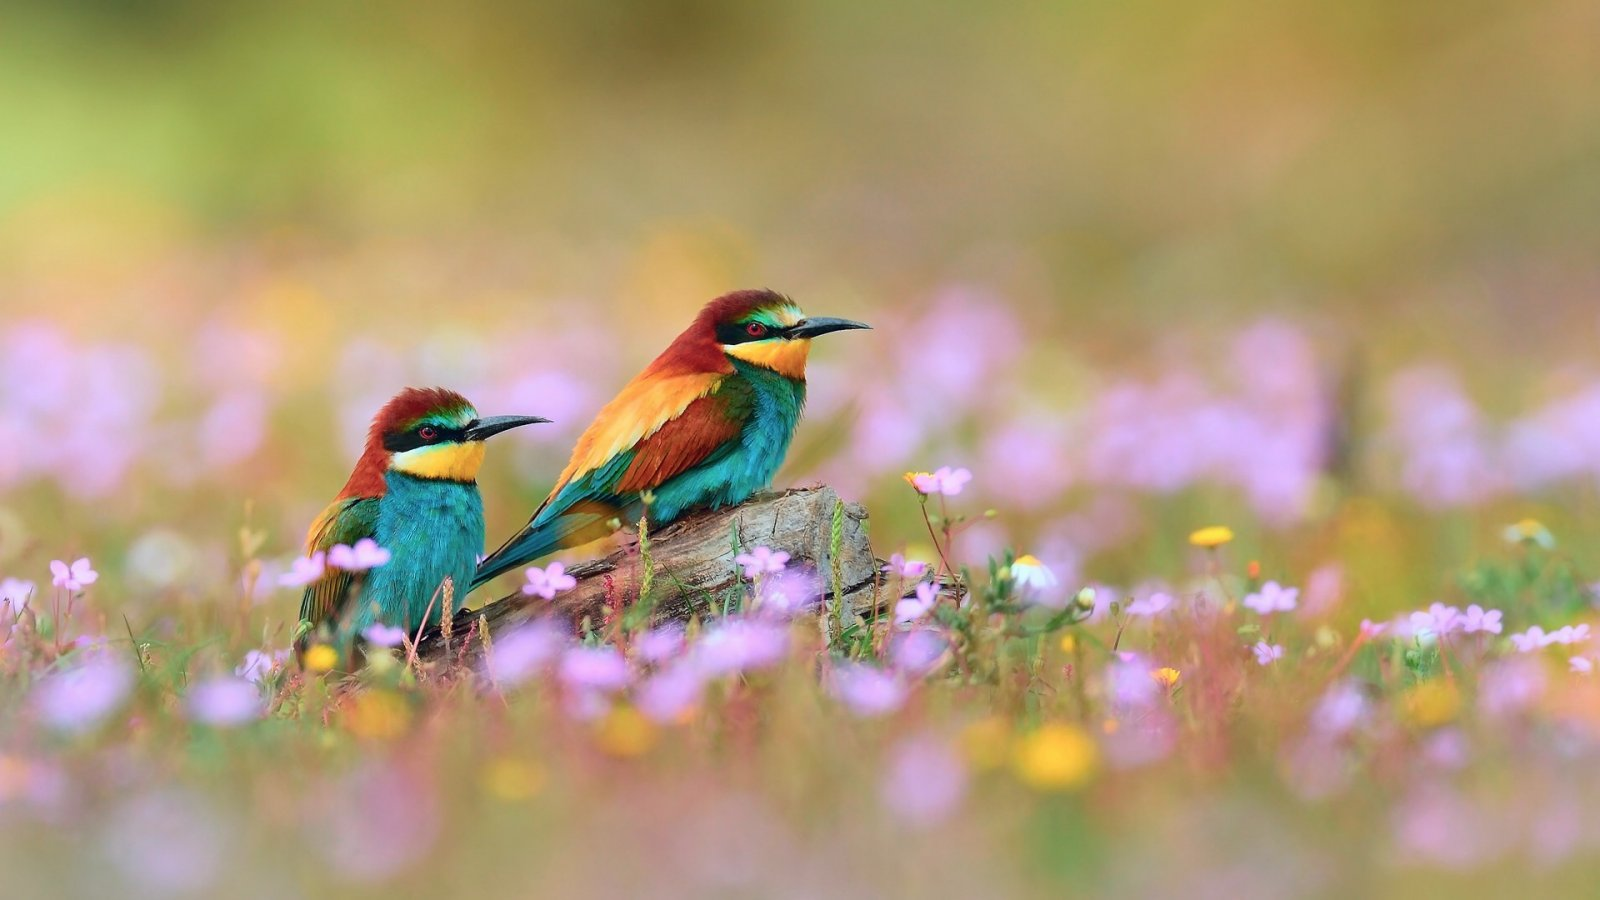 flowers for flower lovers Flowers and birds desktop wallpapers 1600x900